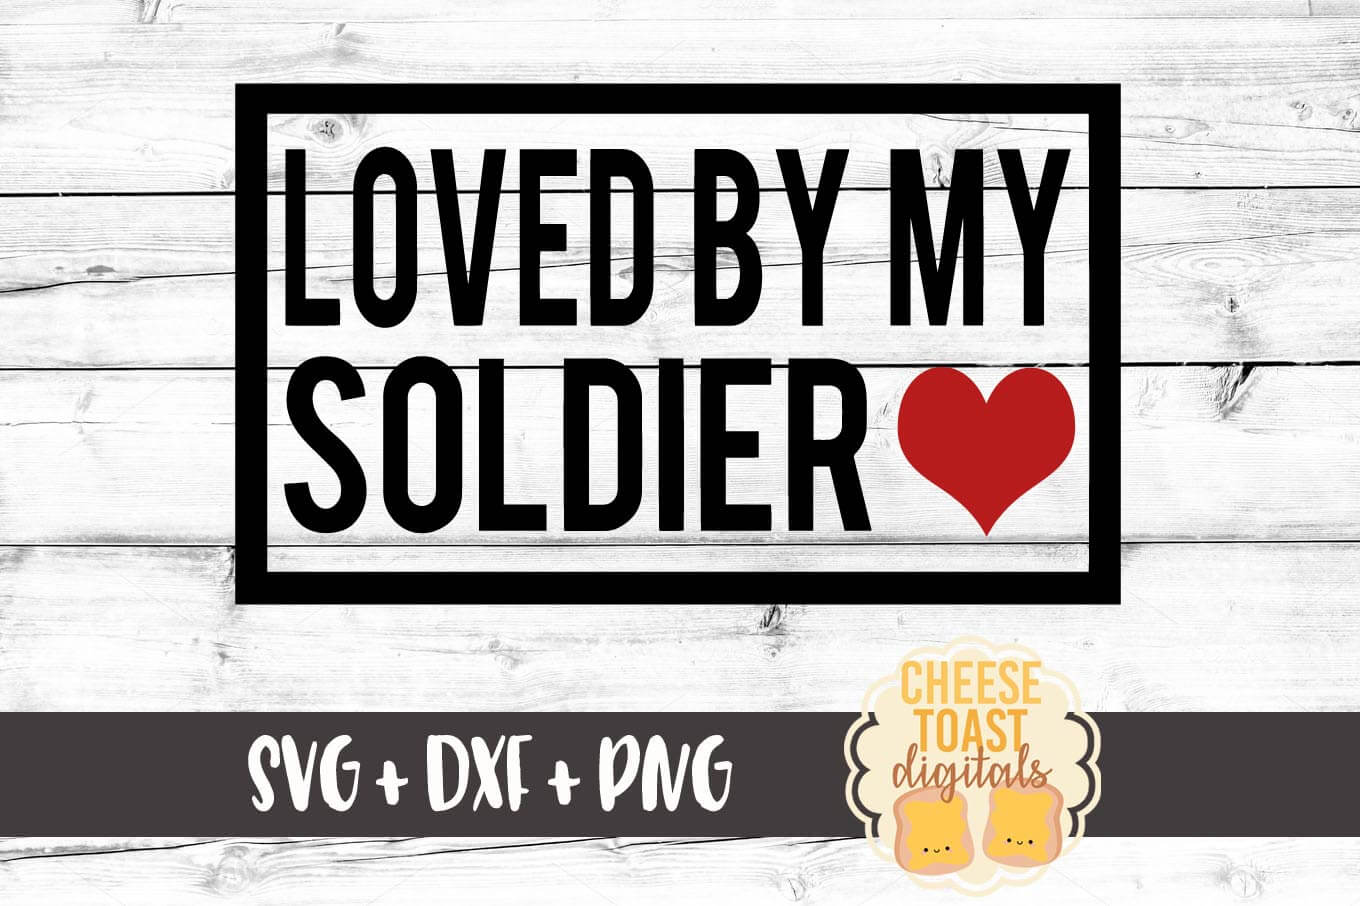 Loved By My Soldier - SVG, PNG, DXF